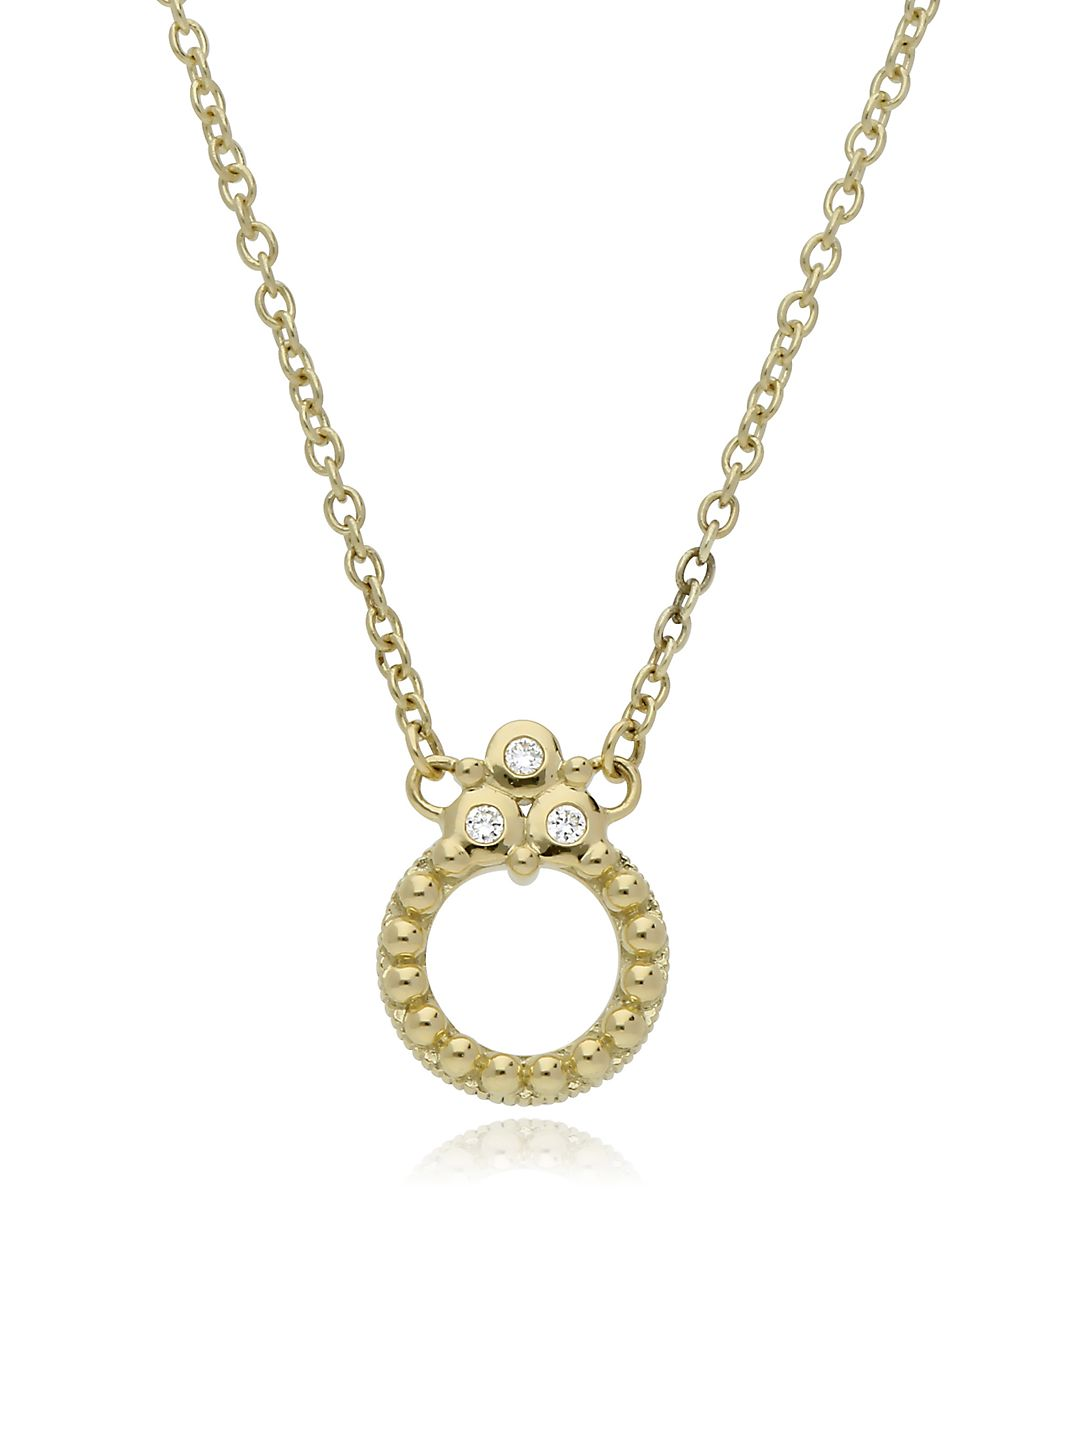 La Petite 14K Gold & Diamond Necklace